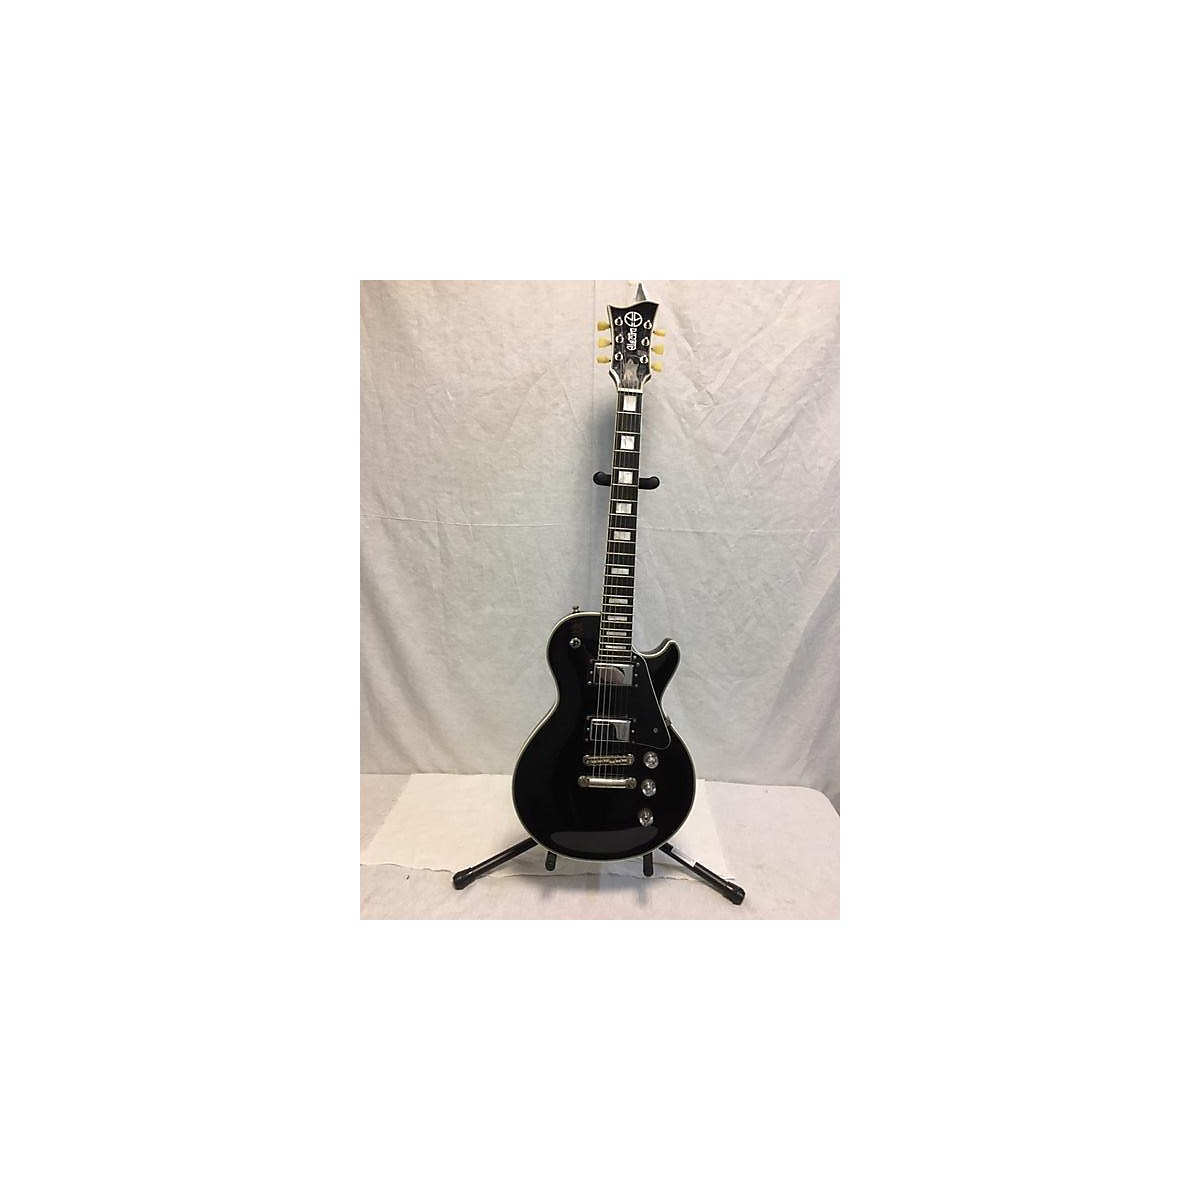 Electra Omega Prime Solid Body Electric Guitar